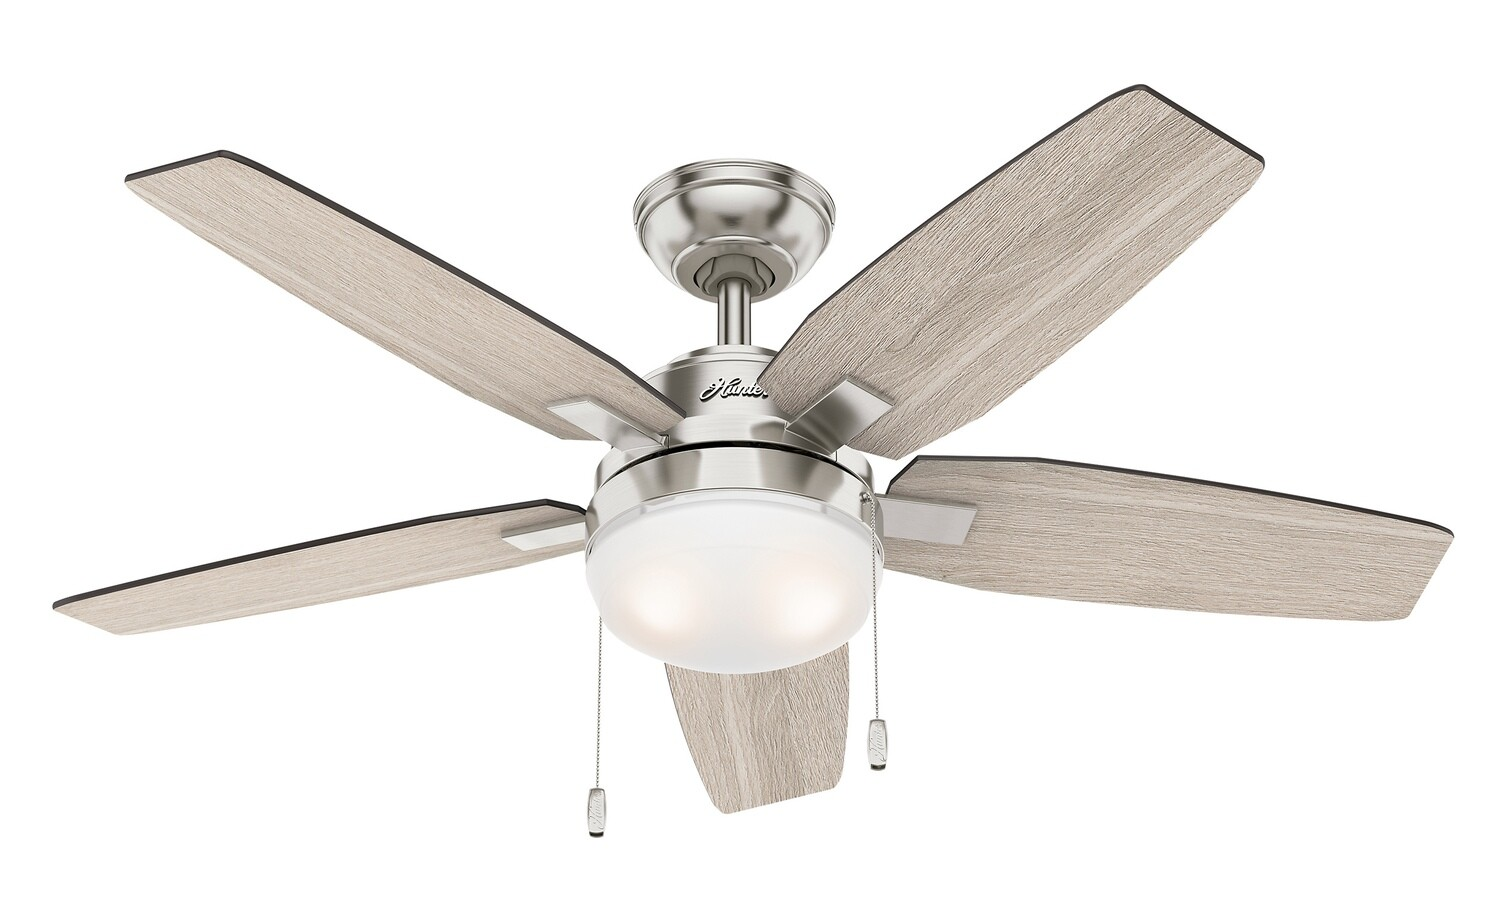 HUNTER ARCOT BN celing fan with light Ø117cm with Pull Chain